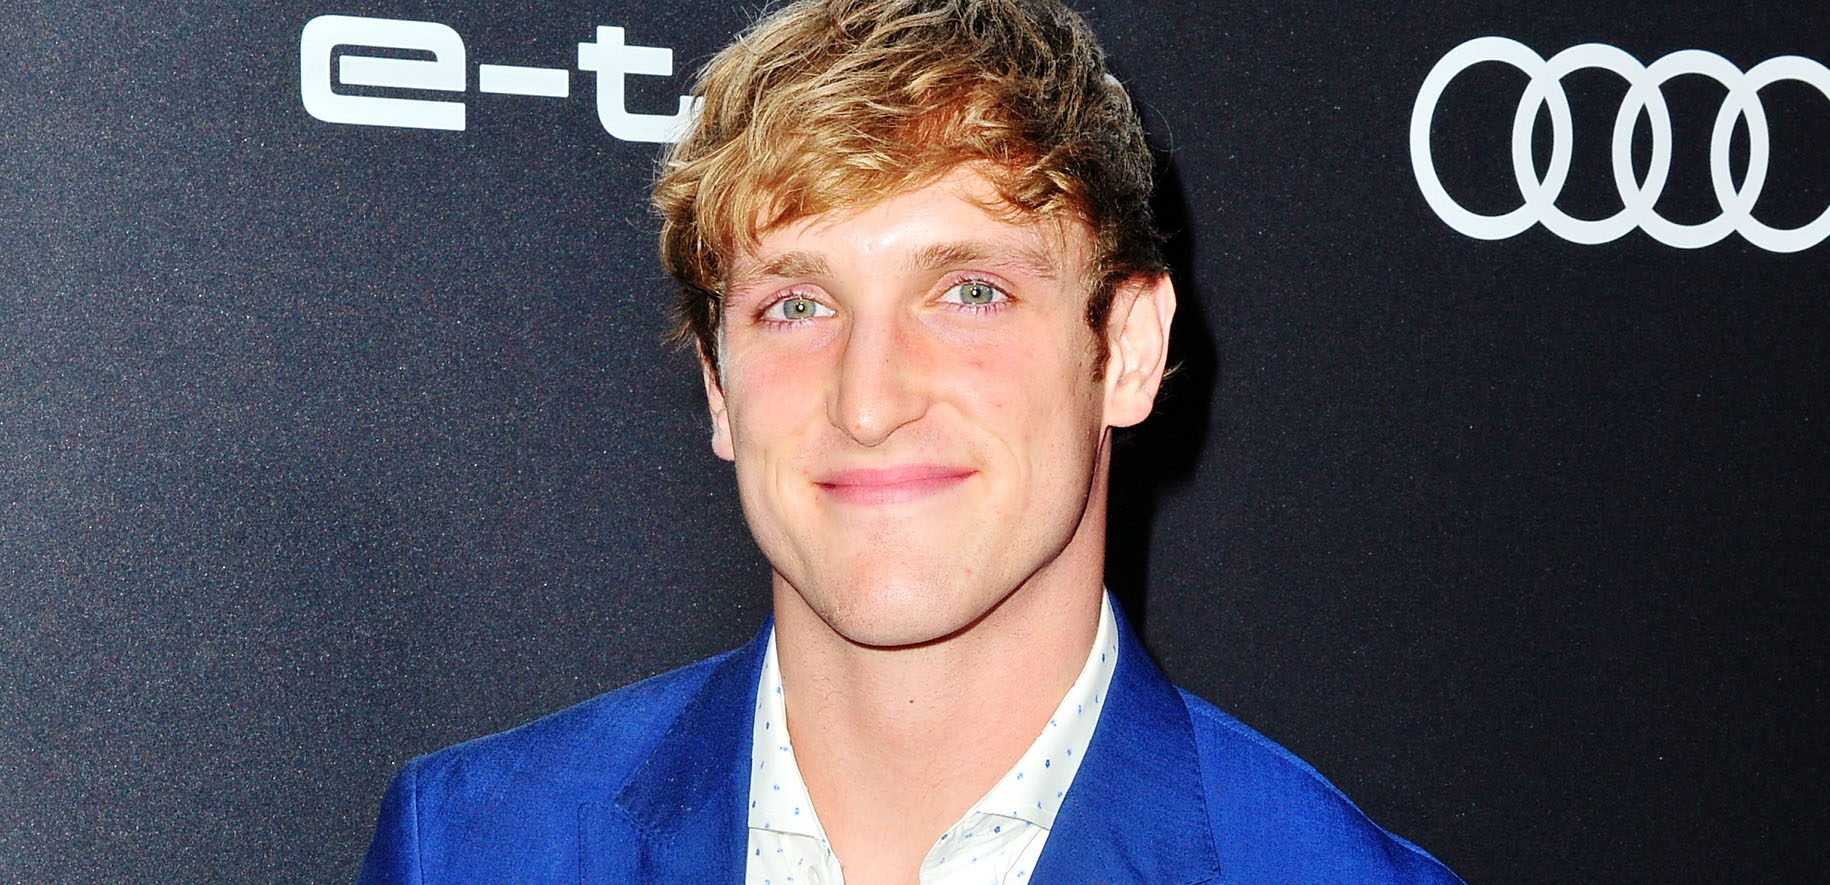 Logan Paul arrives at Audi Celebrates The 70th Emmys. (Jerod Harris/Getty Images)